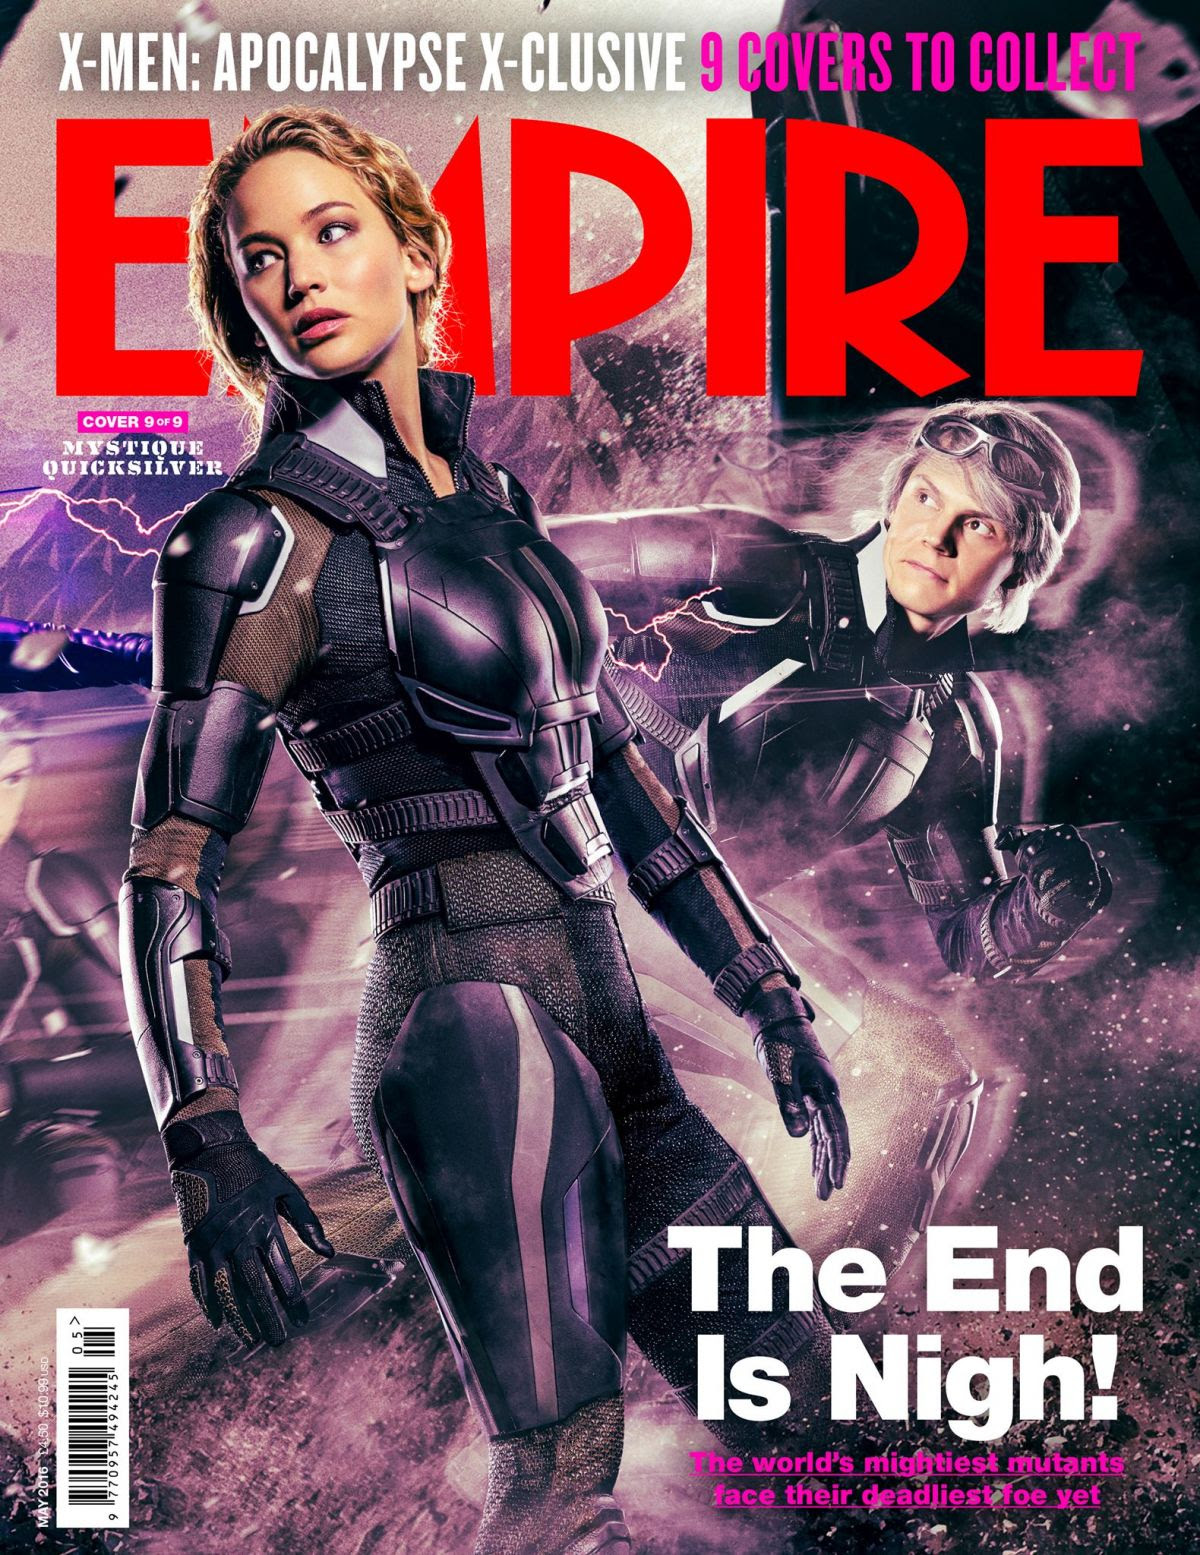 JENNIFER LAWRENCE and SOPHIE TURNER in Empire Magazine, May 2016 Issue